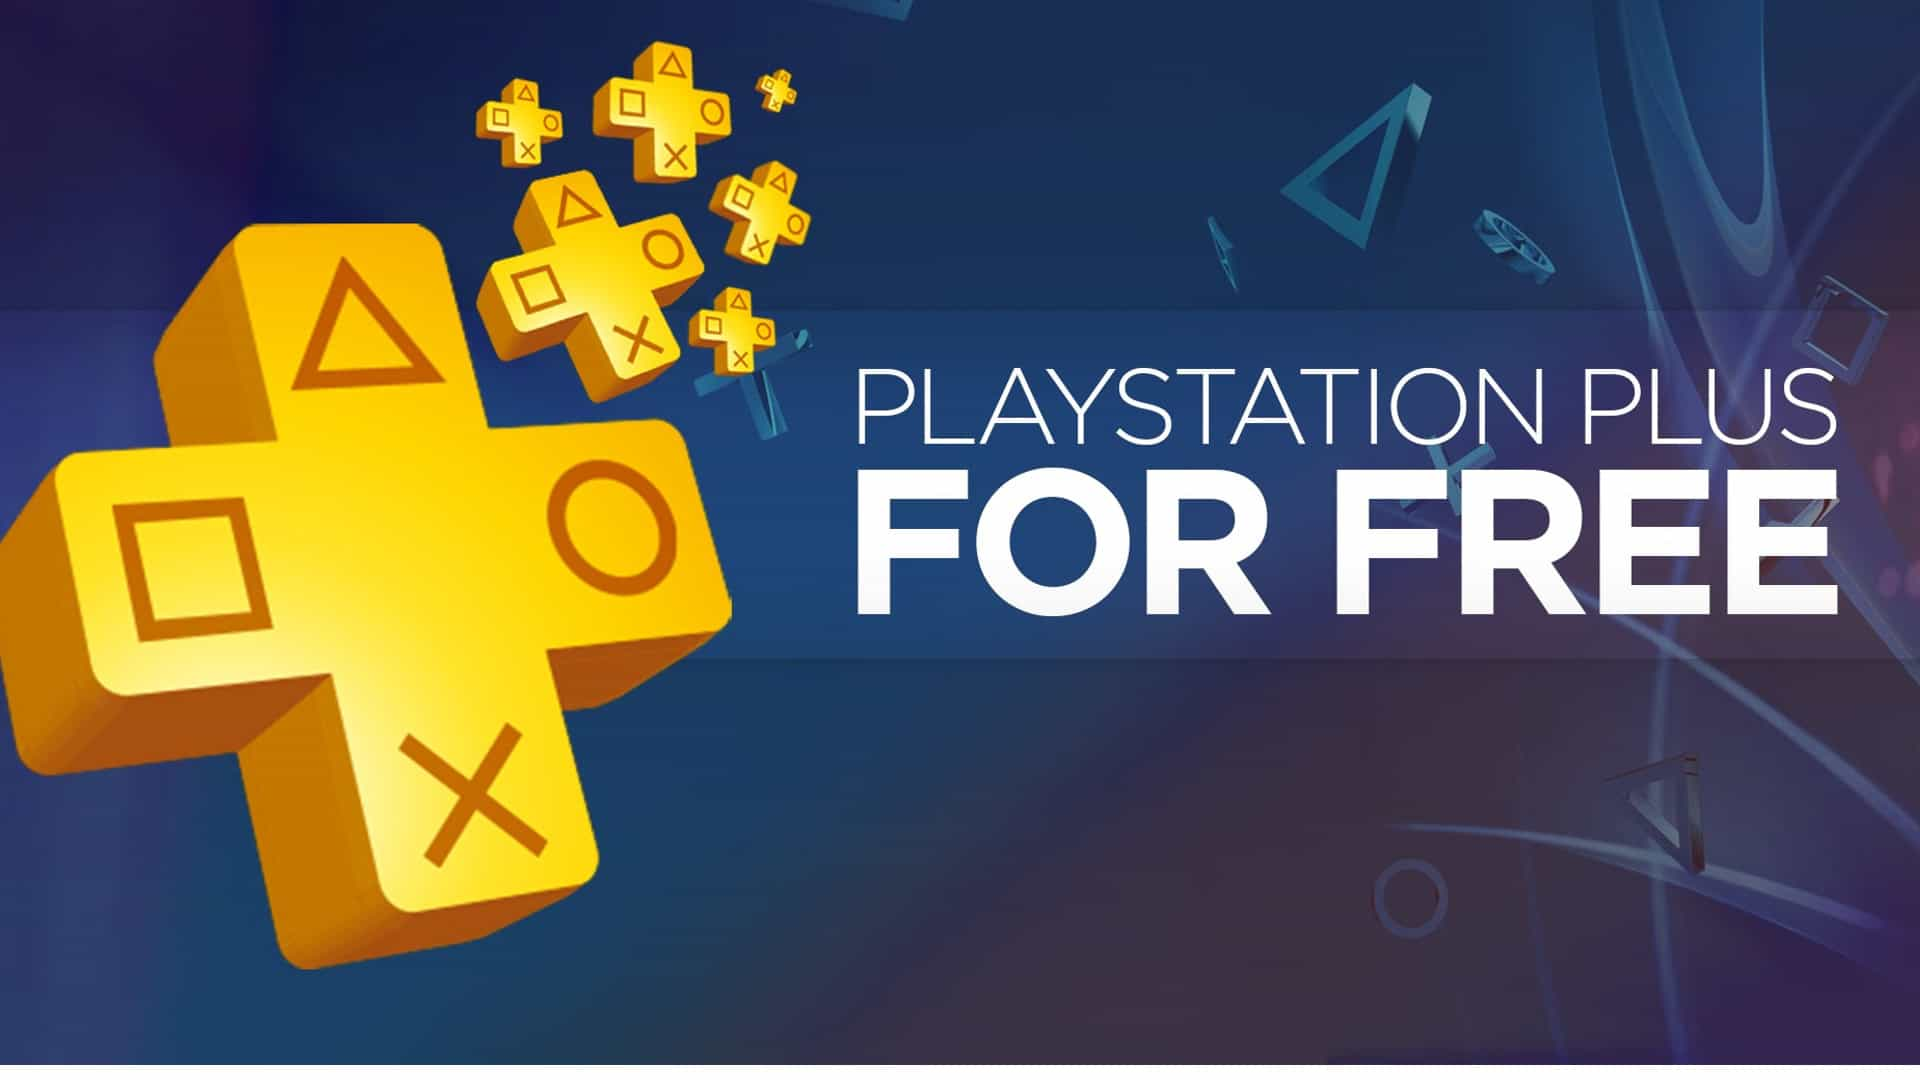 Free PS Plus weekend starts November 15 for all European PlayStation owners